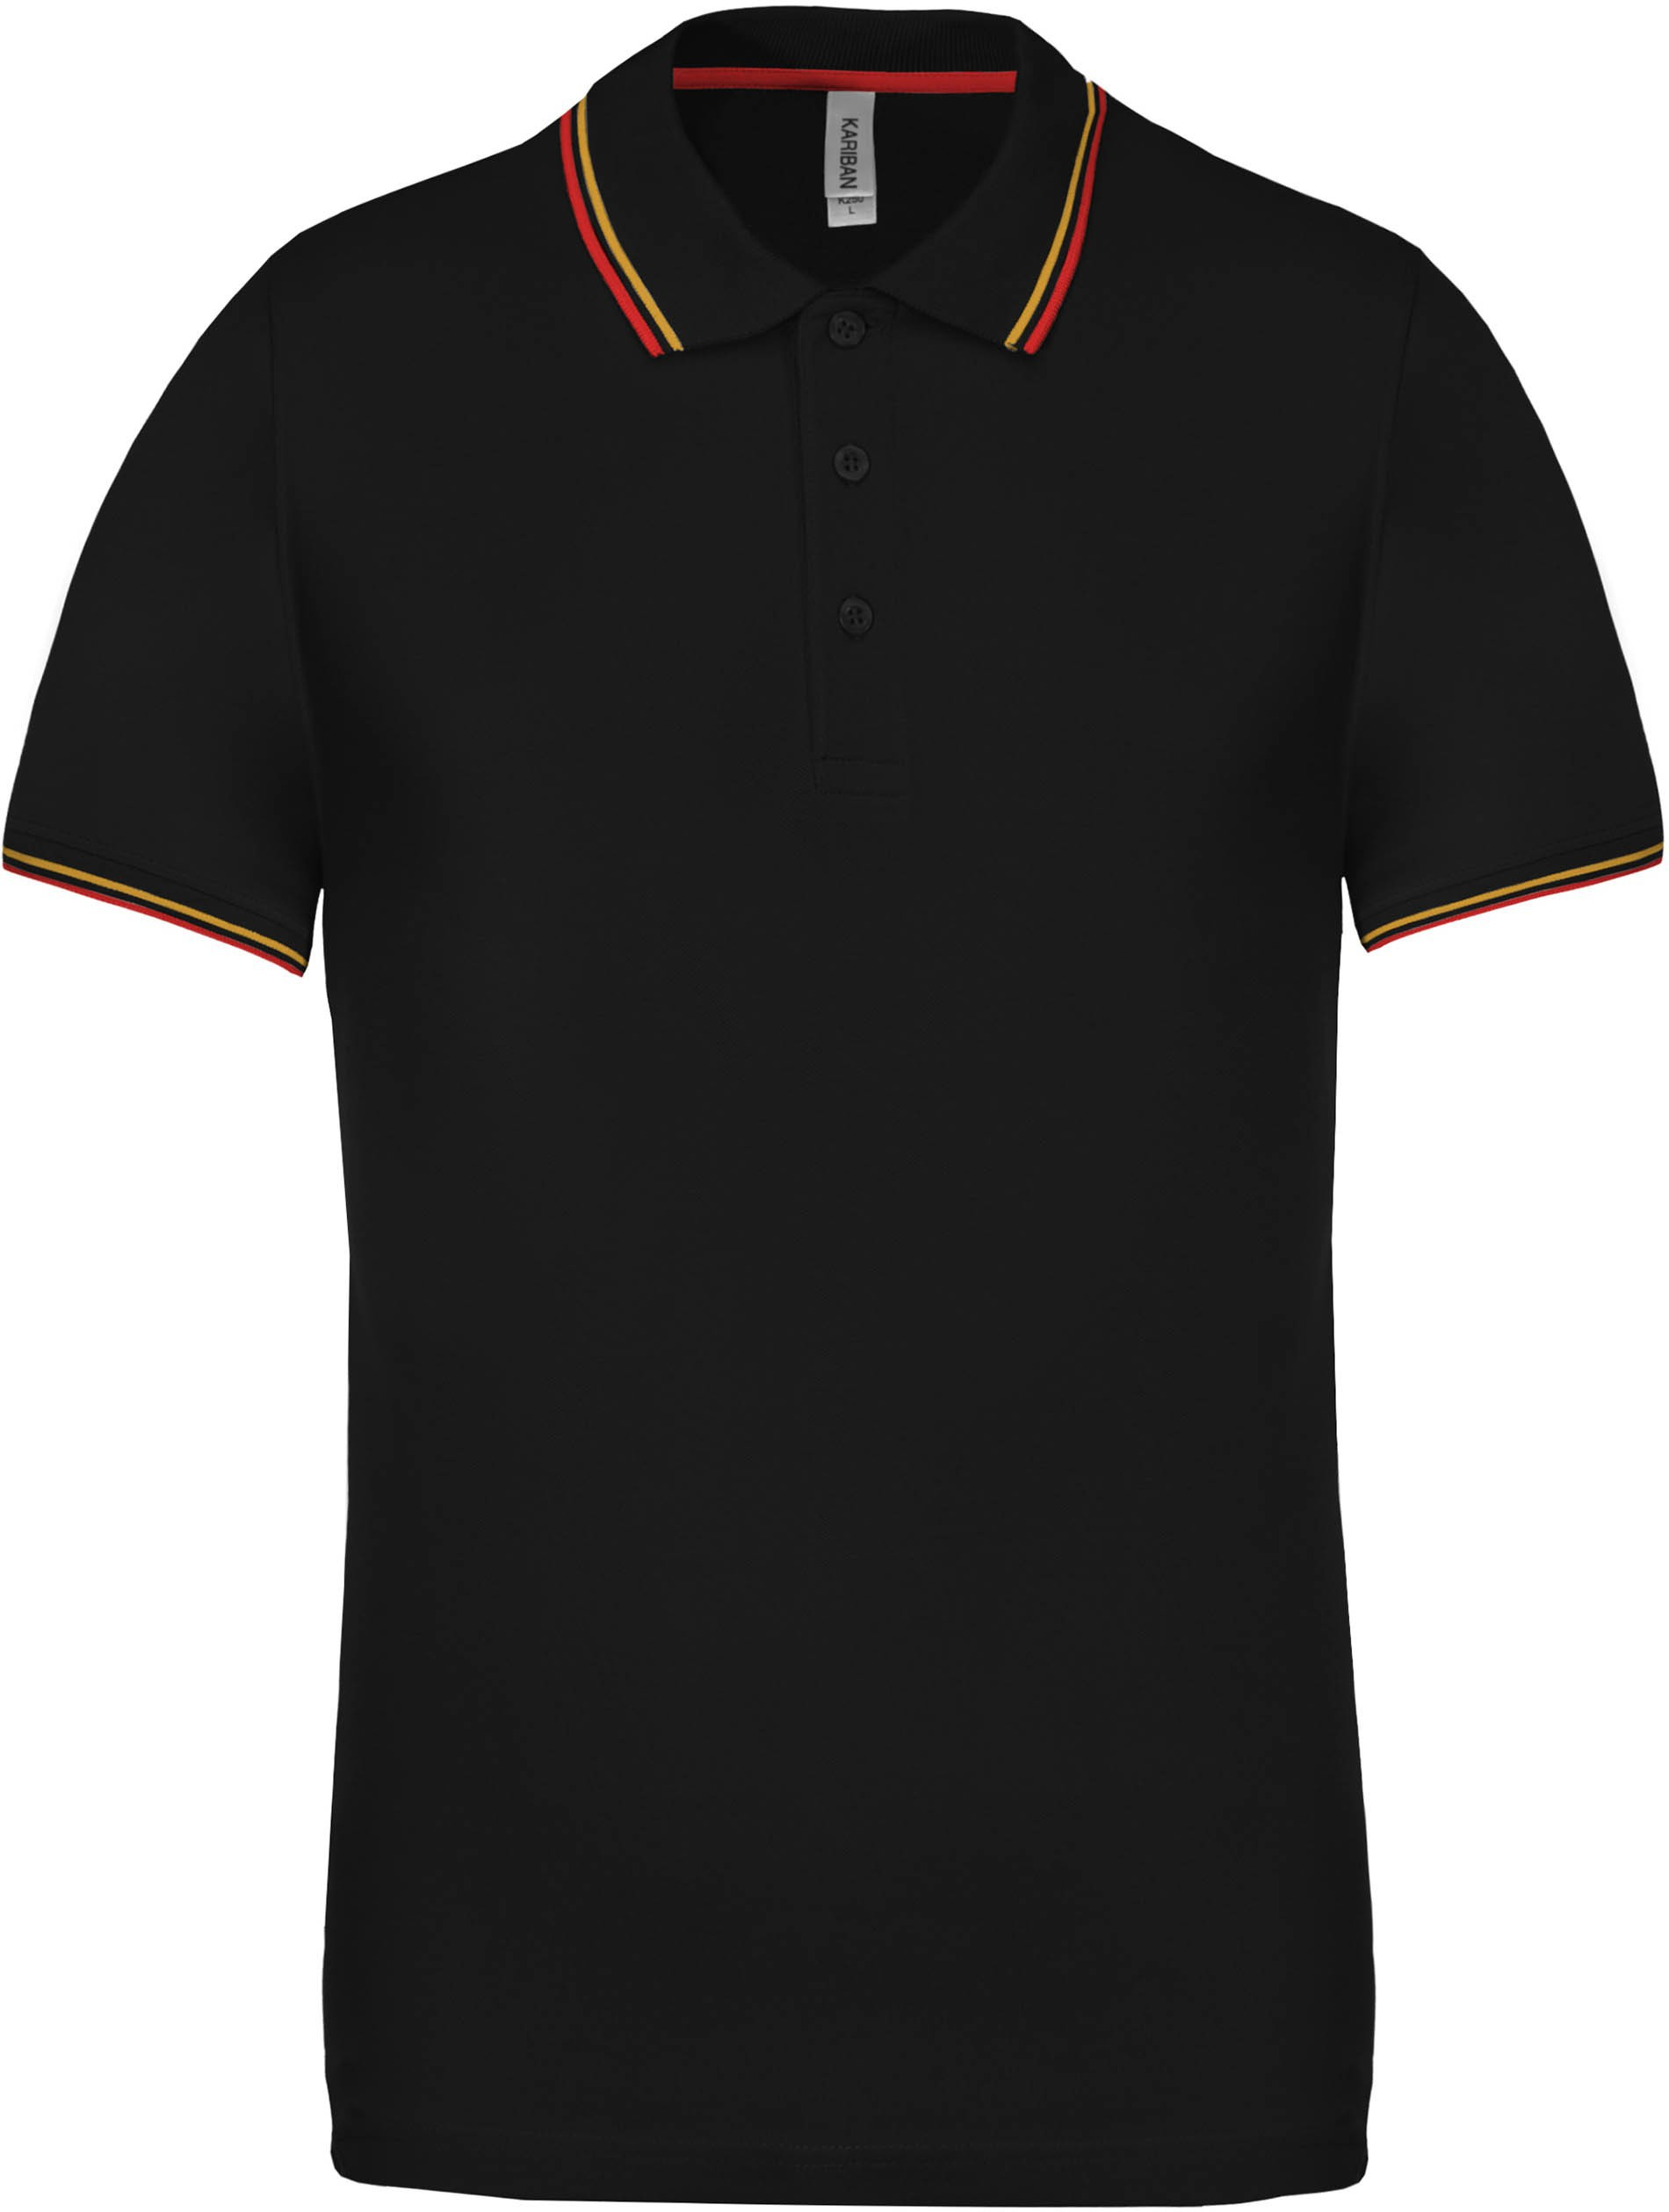 new appearance new arrive first look Kariban Men's Polo Shirt, Black/Red/Yellow, 3XL (Polo T-shirt, 90 ...